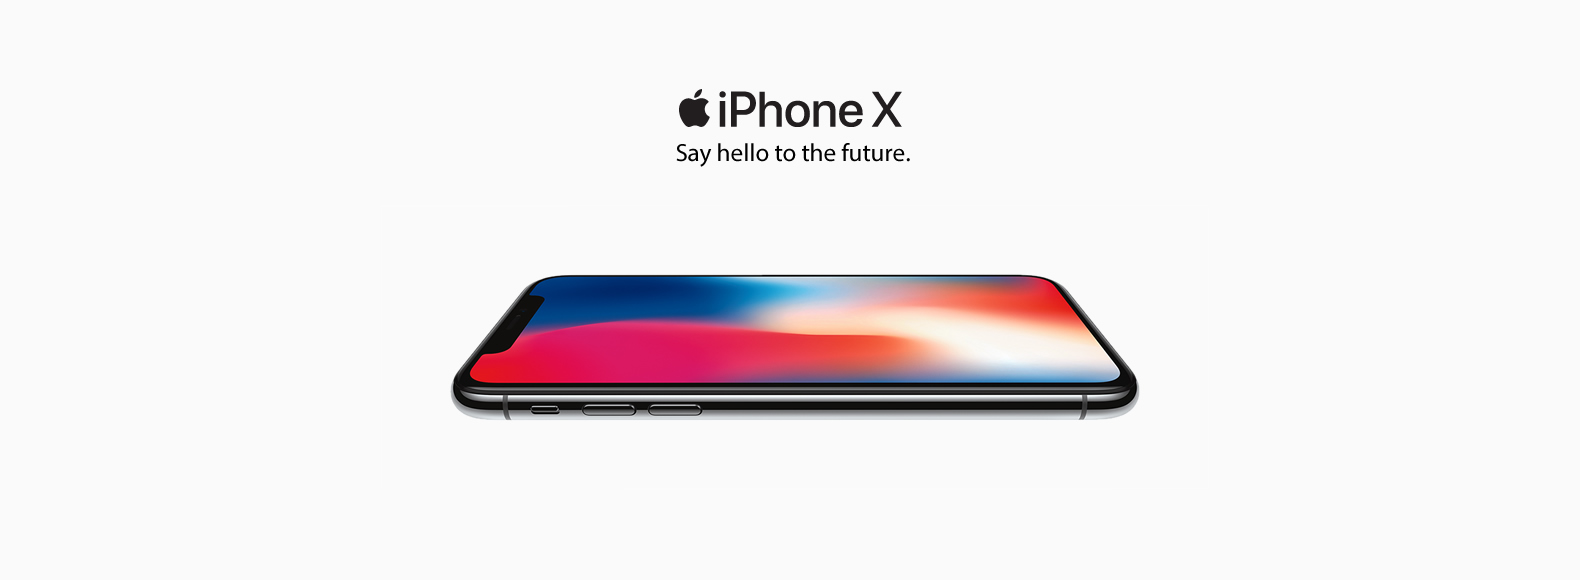 iPhone X. Say hello to the future.